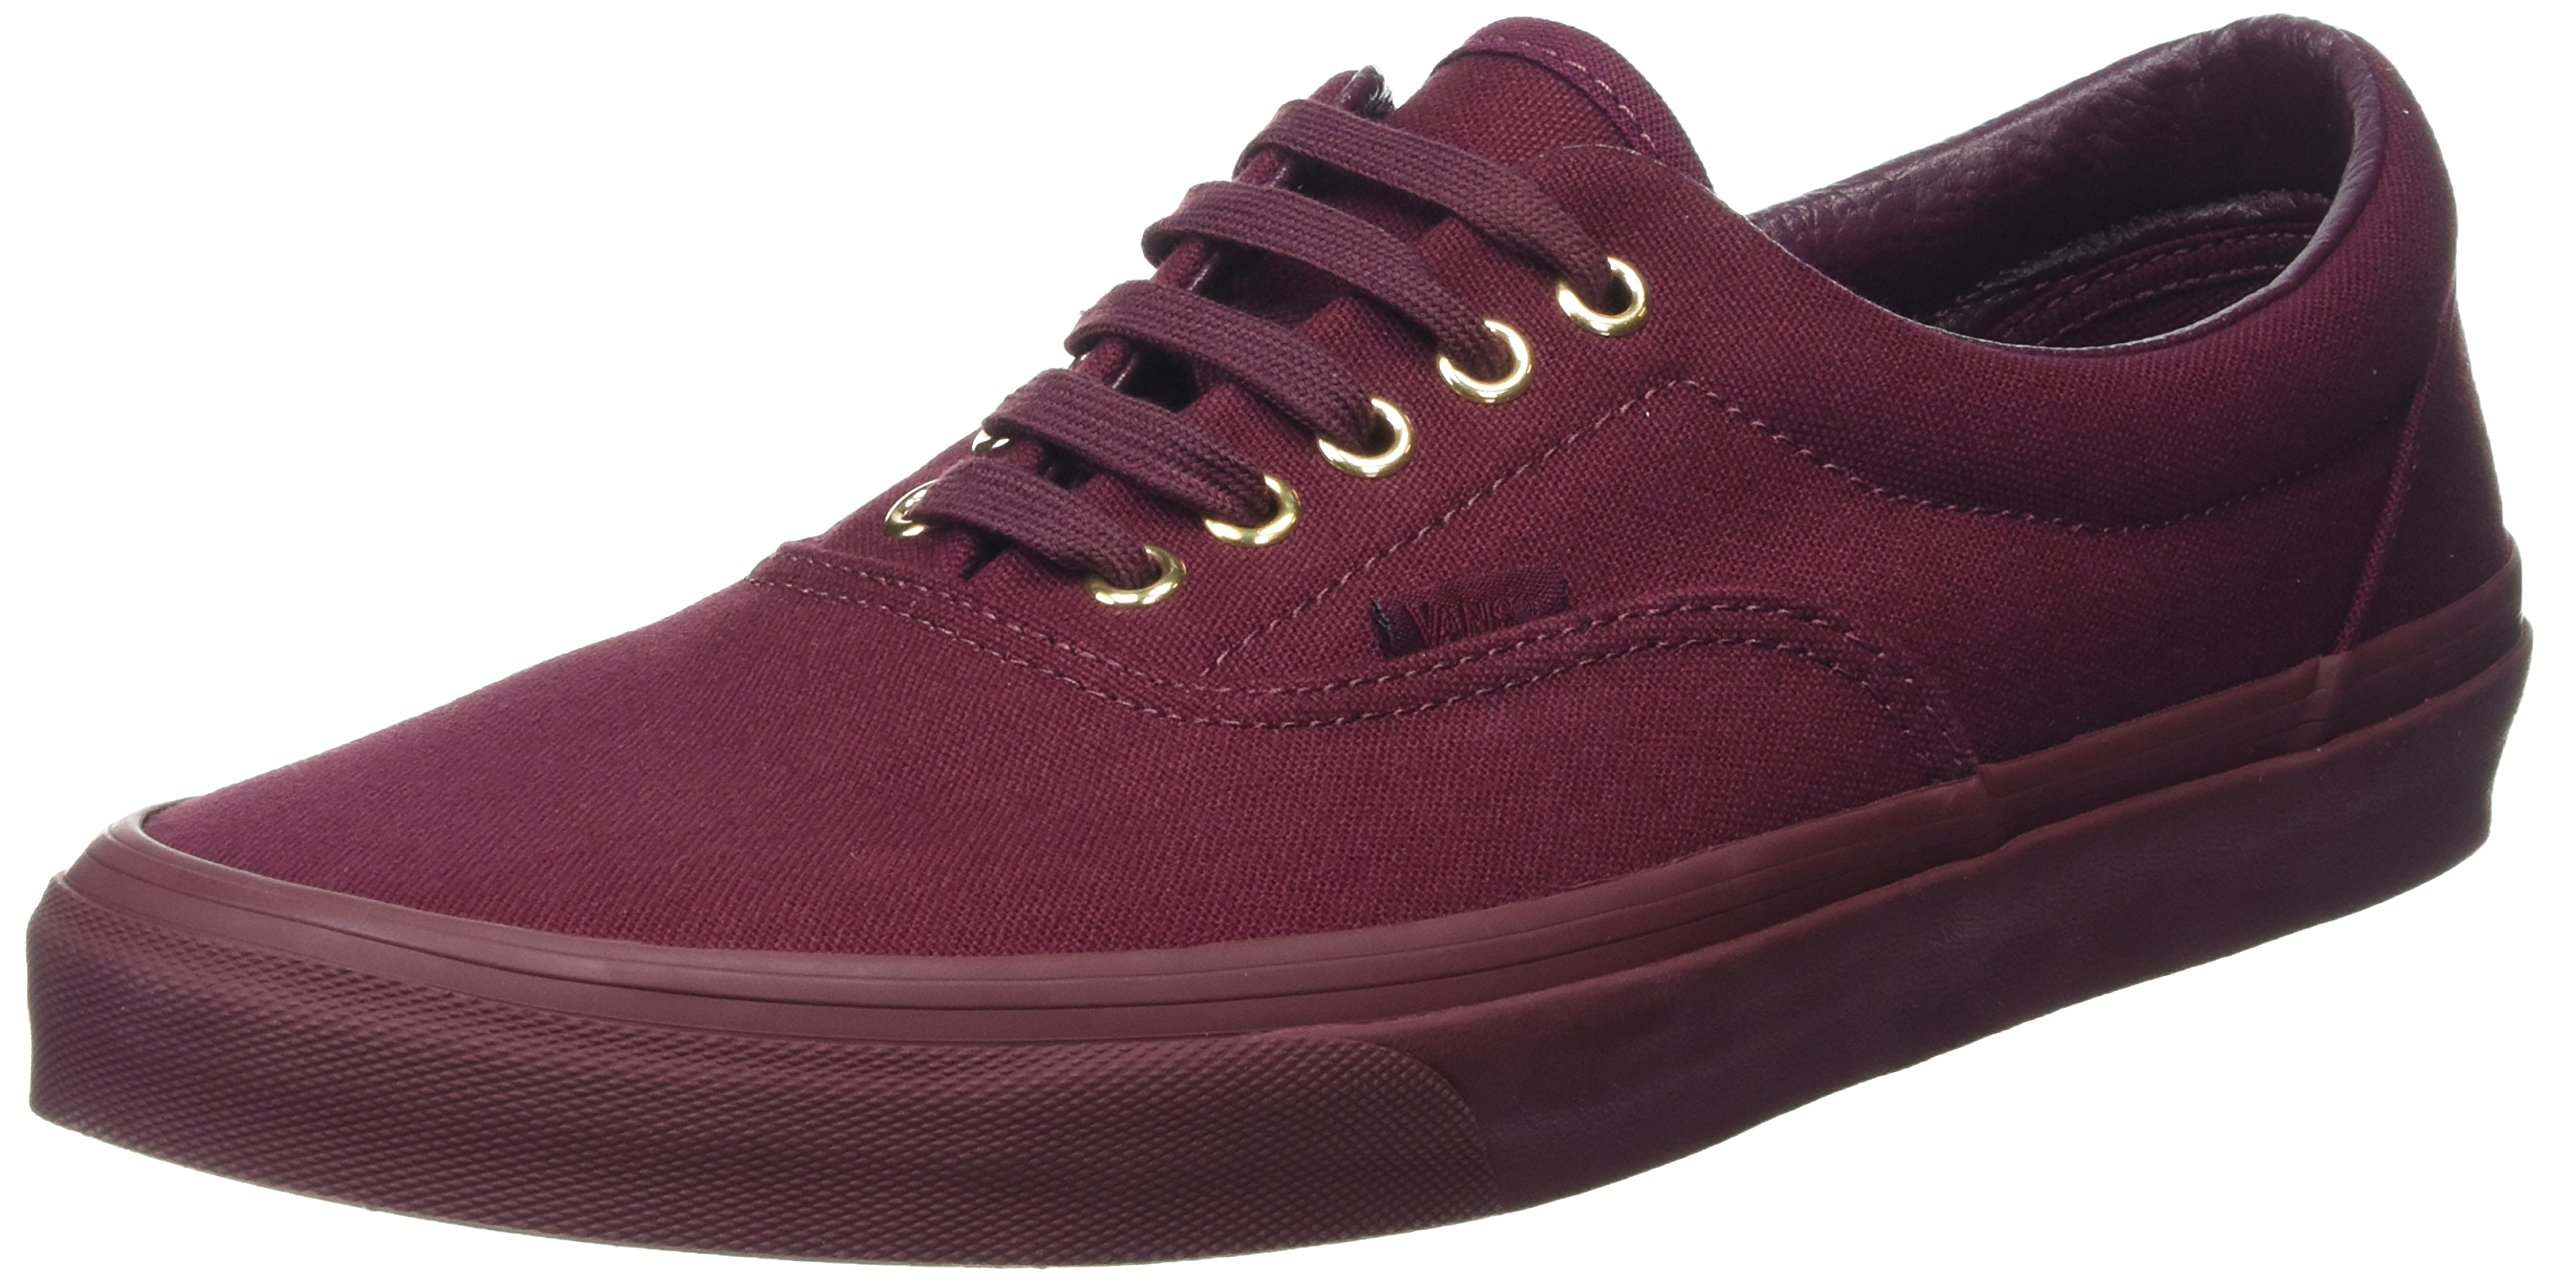 2b2b9da0a7 Vans Era (Gold Mono) Port Royale Size Men 5.0   Women 6.5 ...